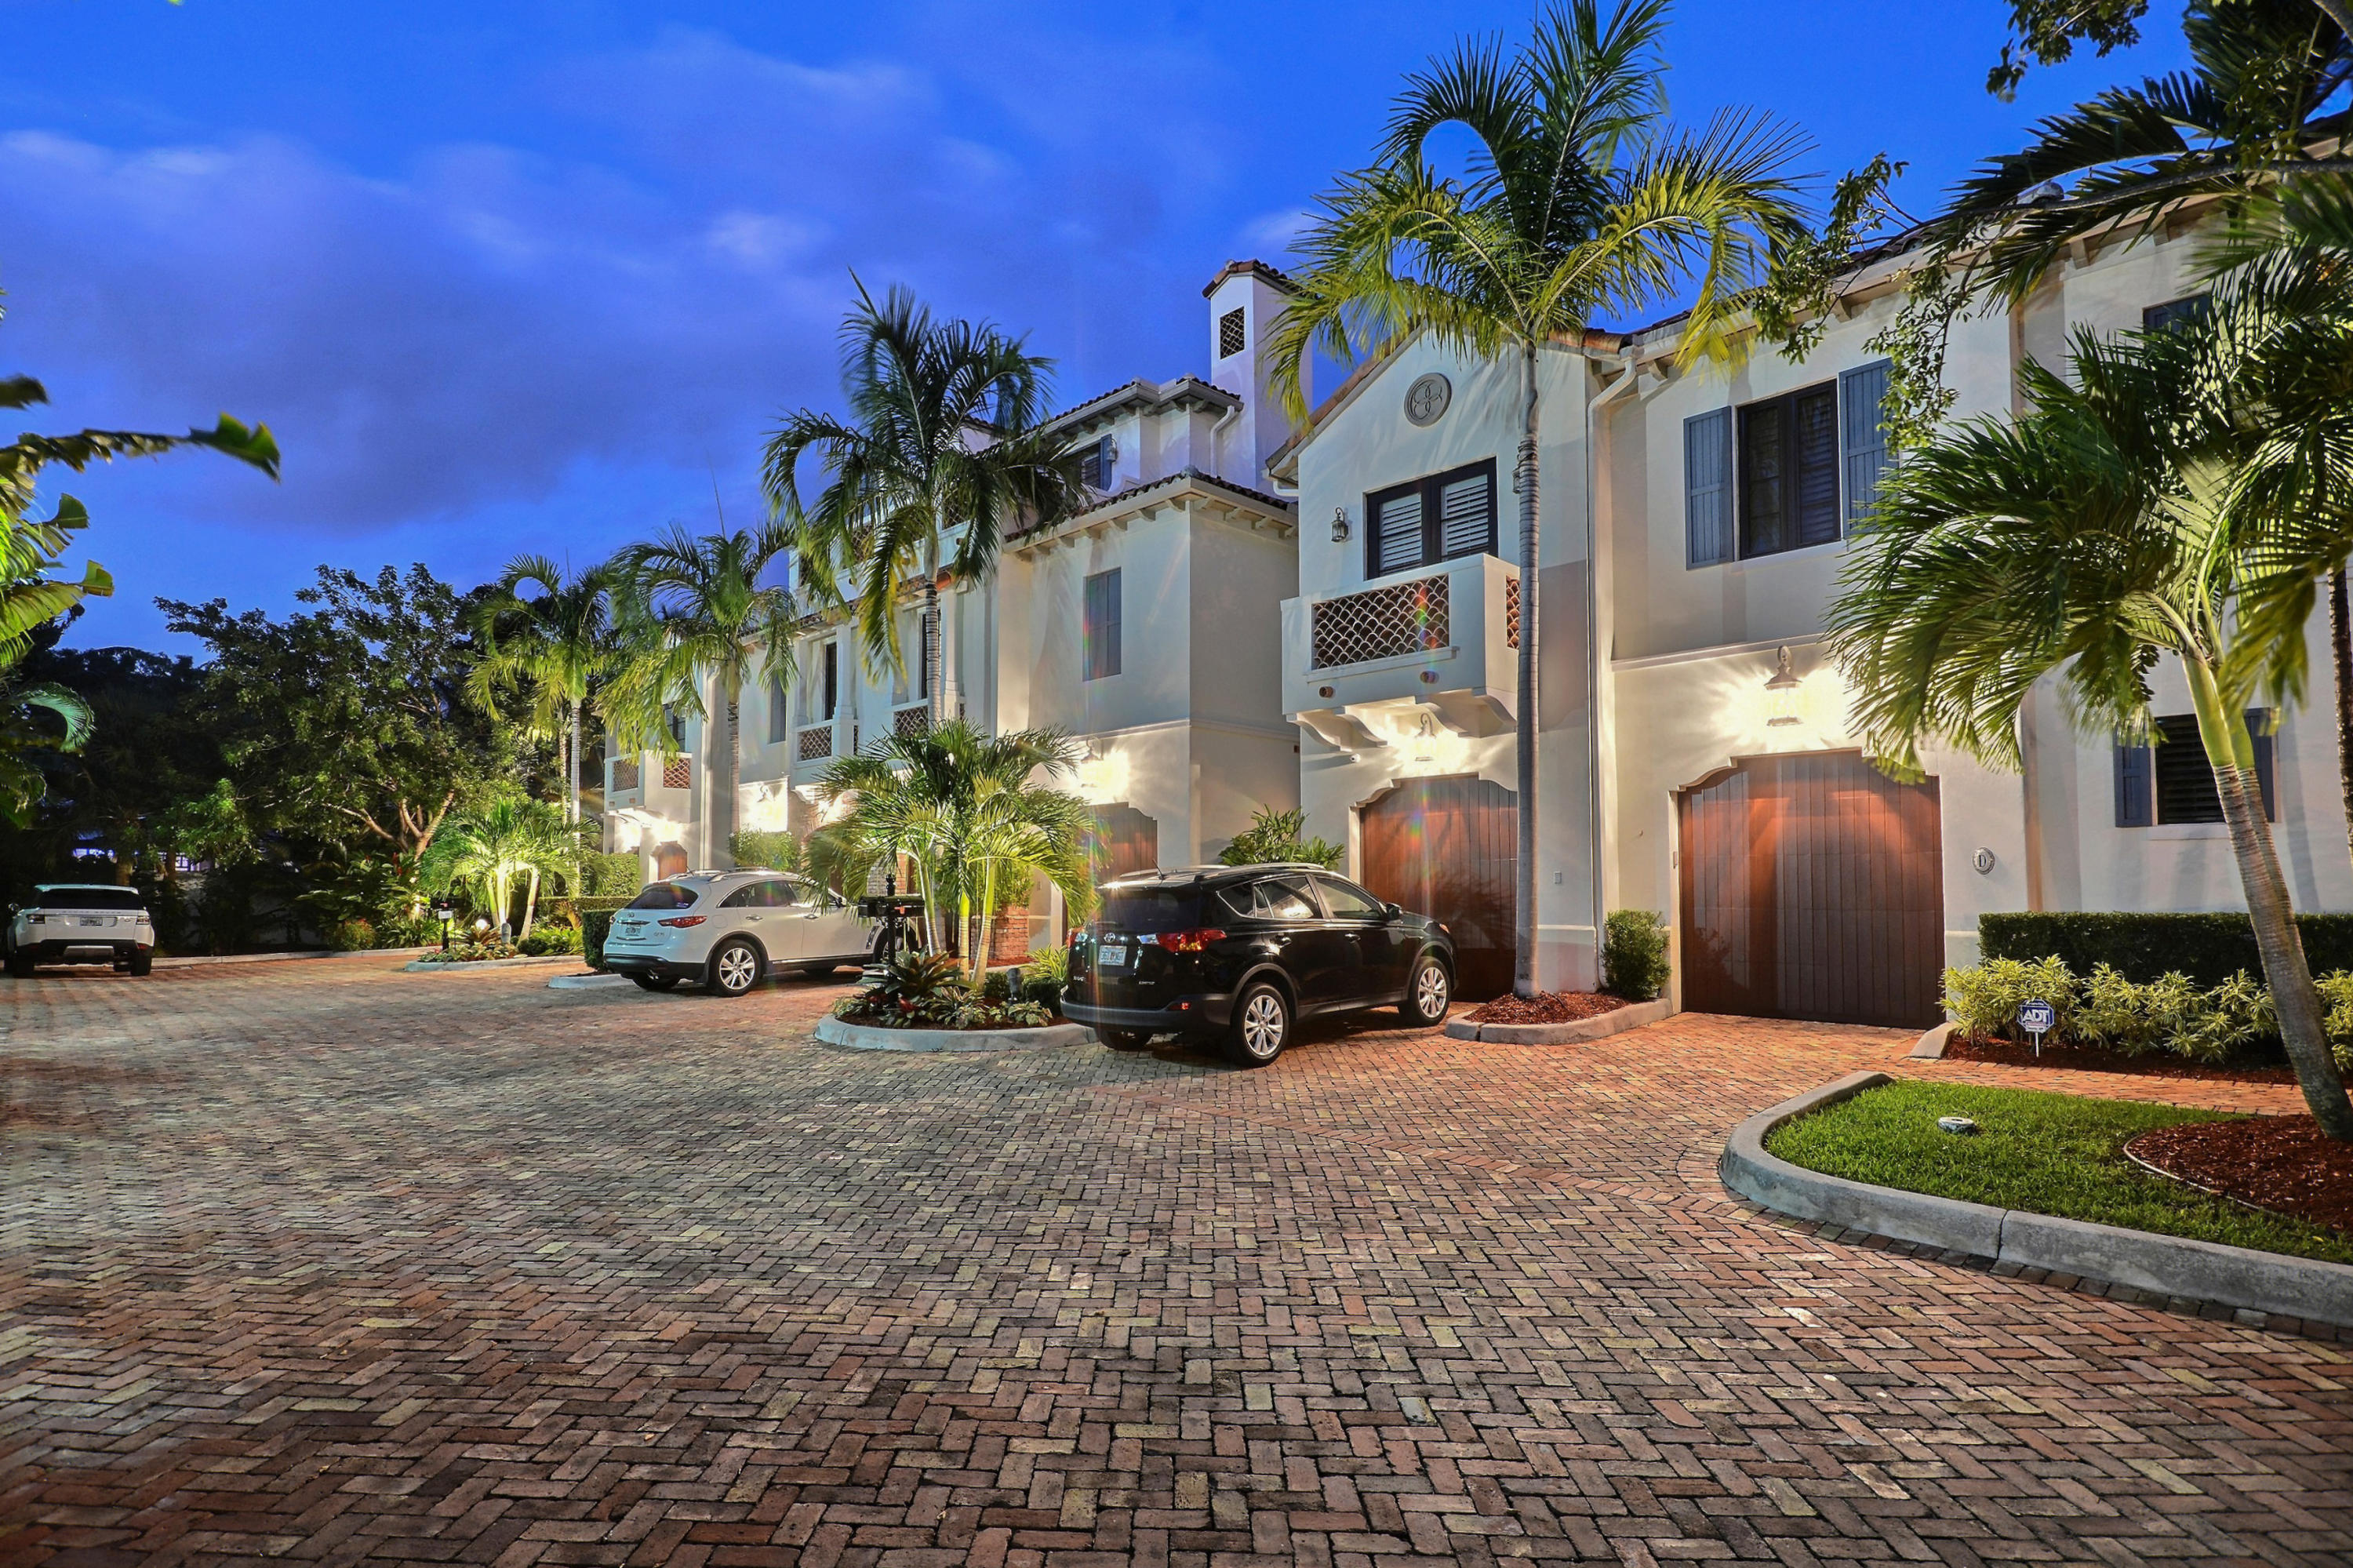 825 1st Street, Delray Beach, Florida 33483, 4 Bedrooms Bedrooms, ,5.1 BathroomsBathrooms,Townhouse,For Sale,Harbour House,1st,RX-10502712